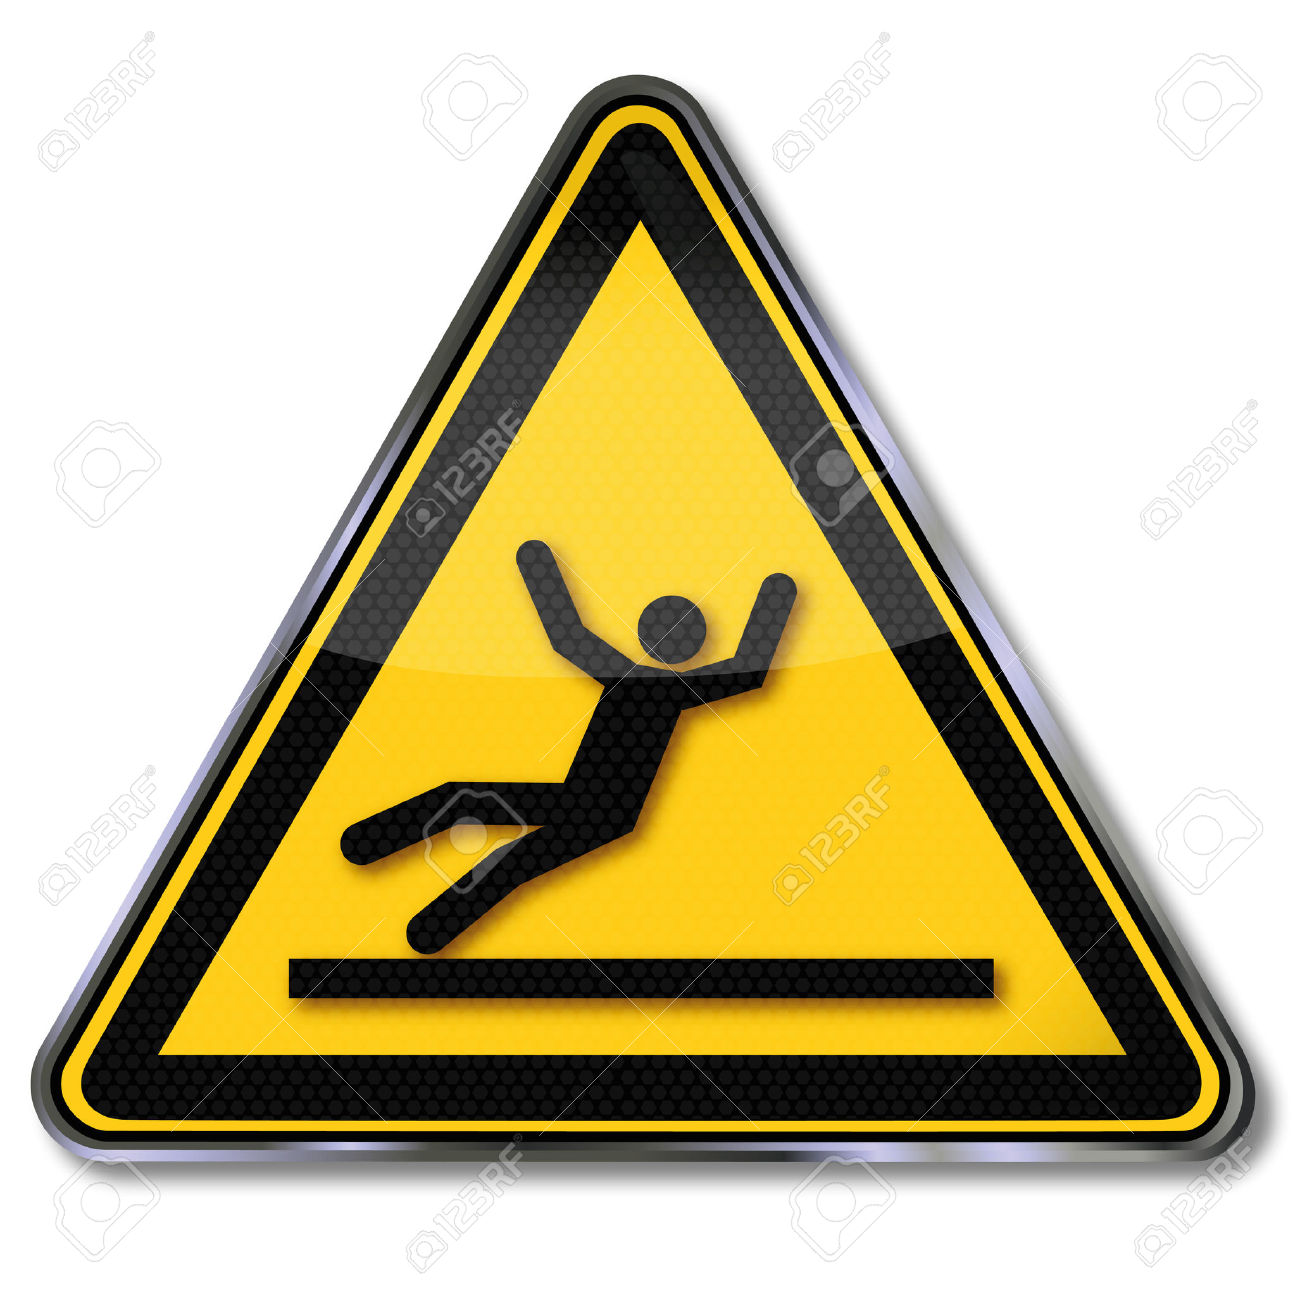 Danger Sign Warning Risk Of Slipping Royalty Free Cliparts.